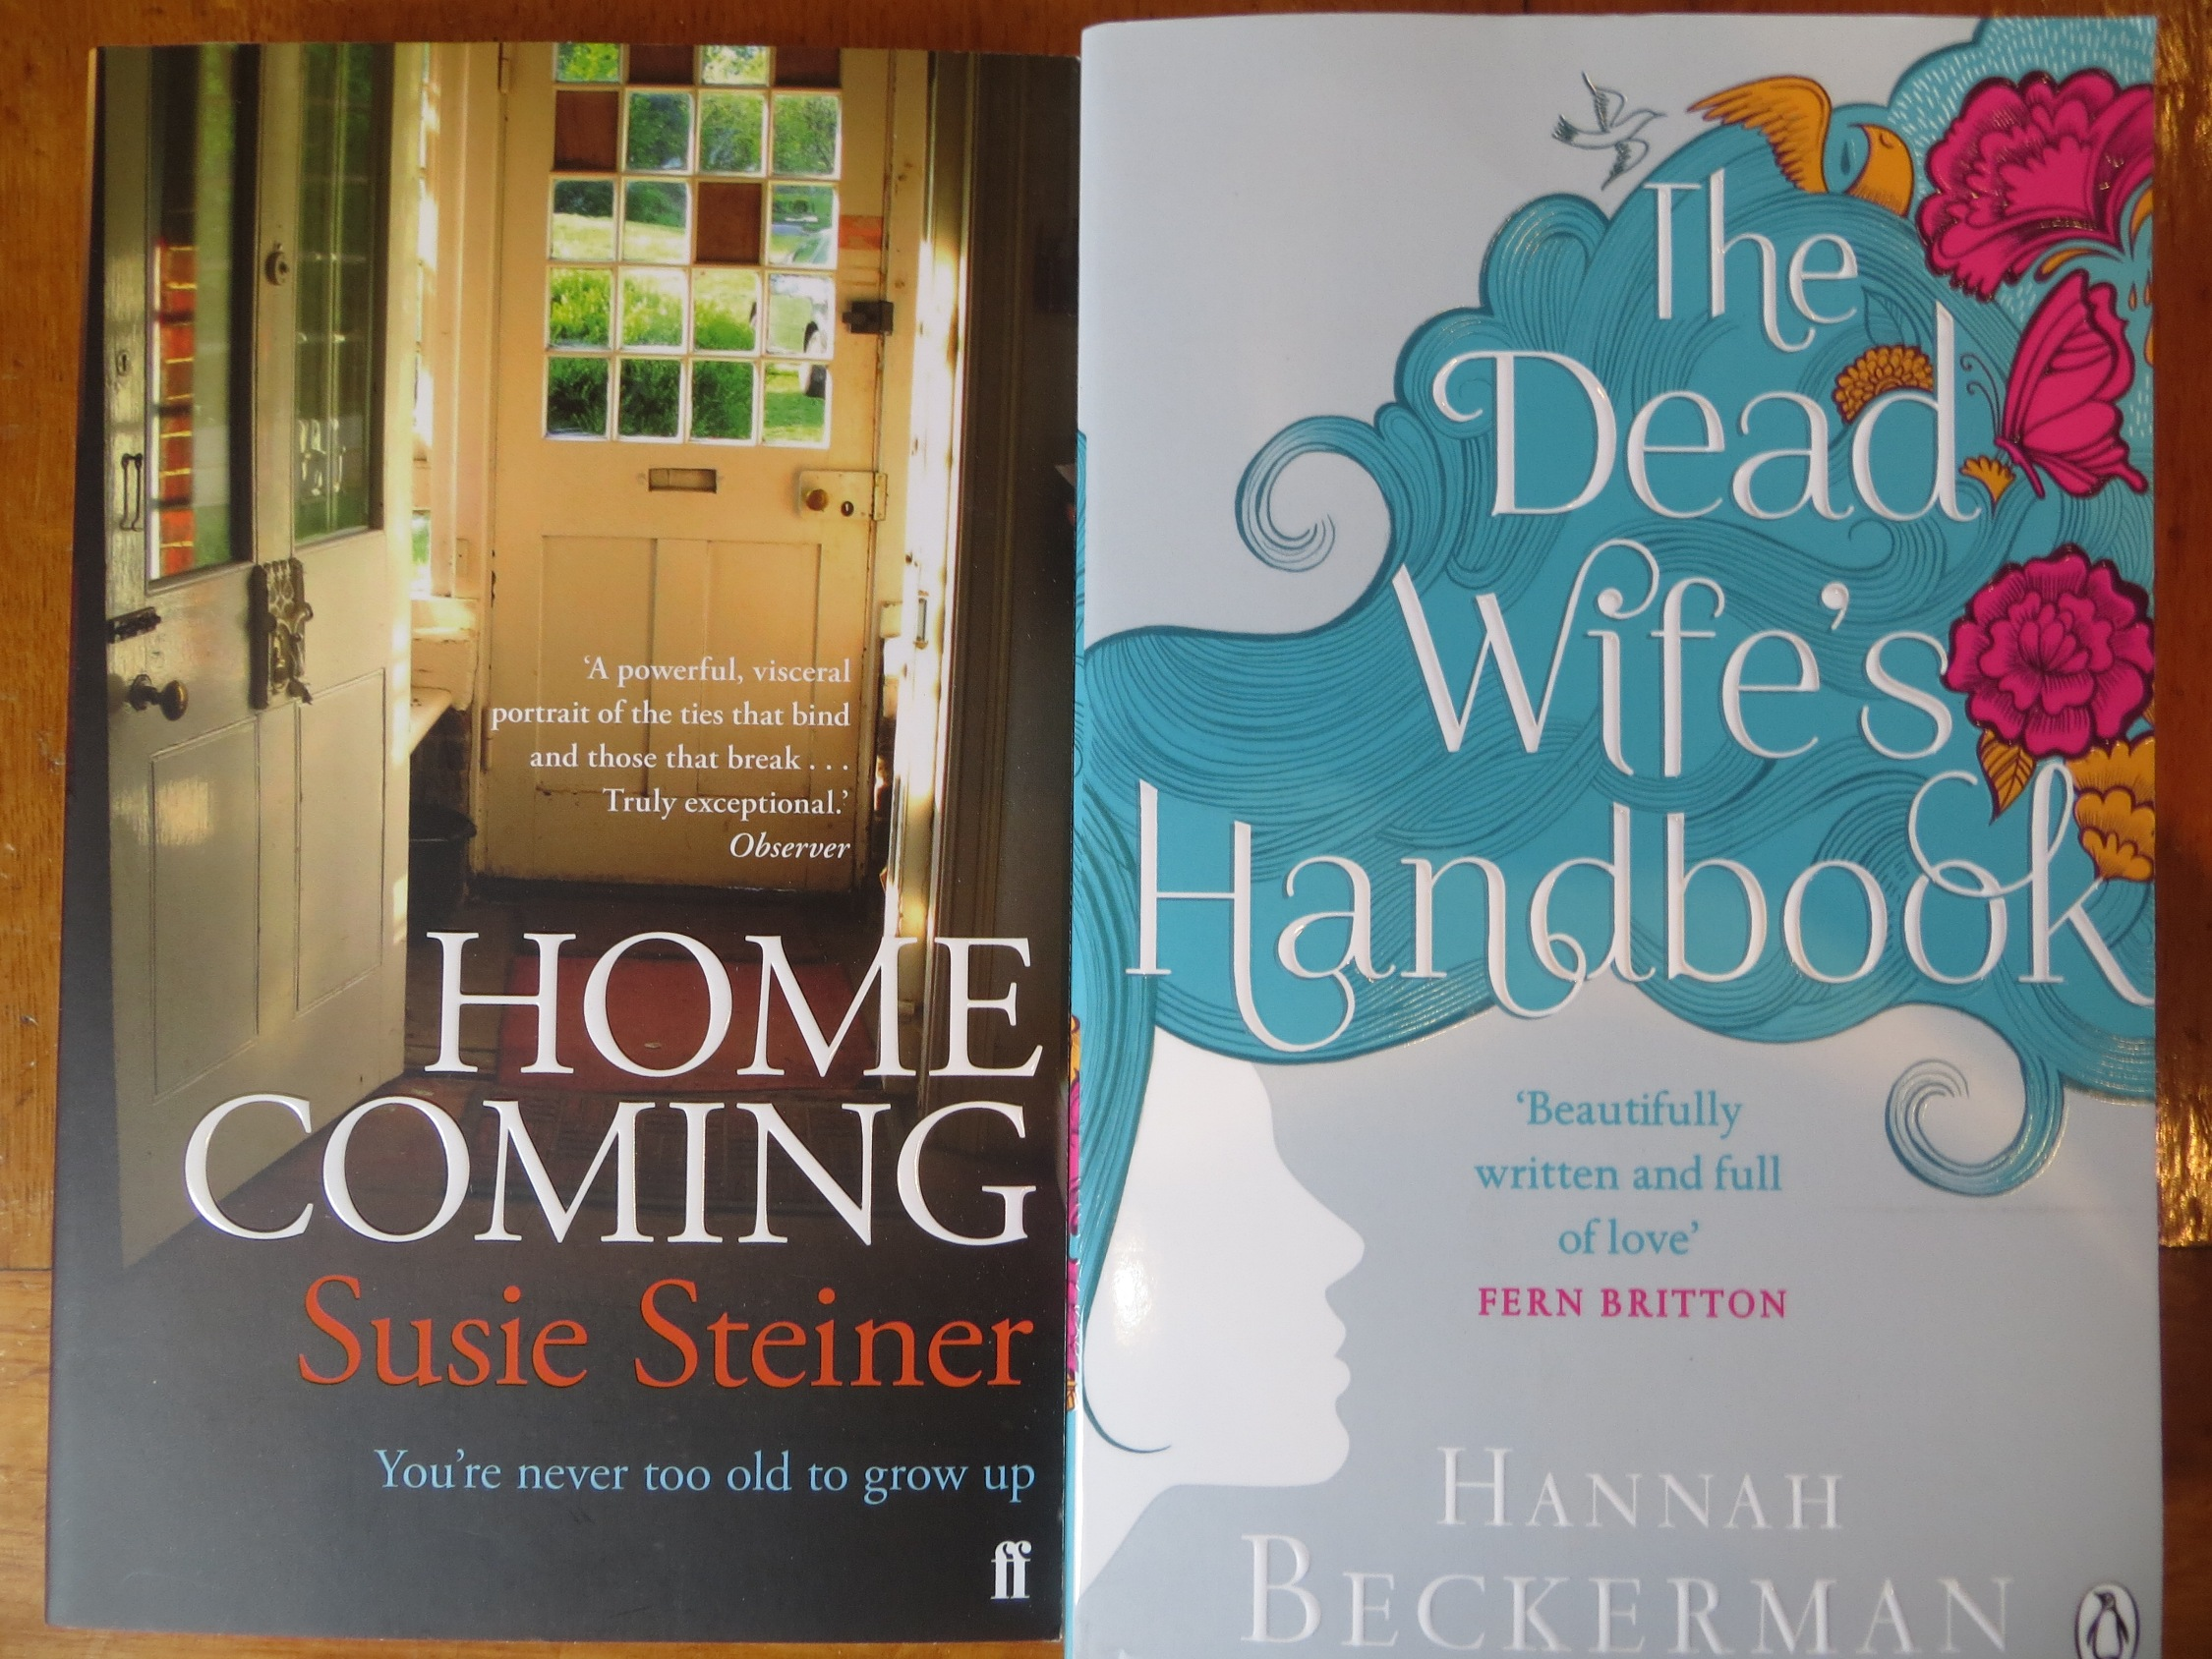 Homecoming by Susie Steiner and The Dead Wife's Handbook by Hannah Beckerman